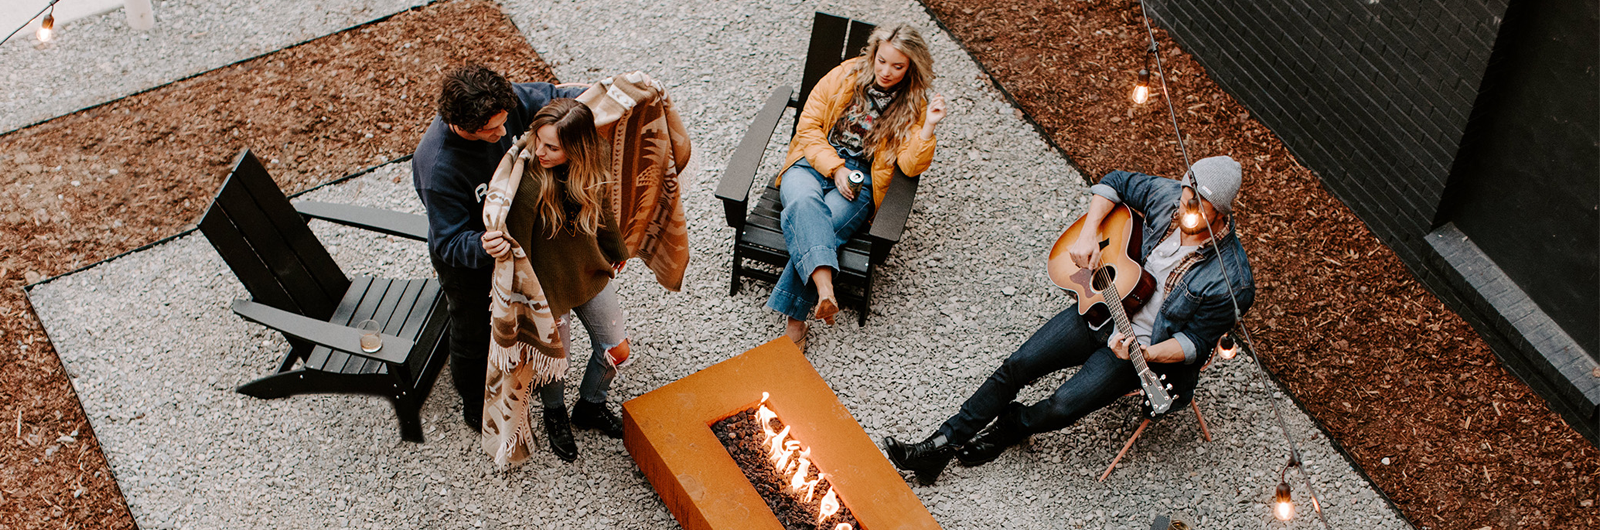 Your New Nashville Digs Comes with a Vintage Tailgating Truck and Fire Pits Aplenty